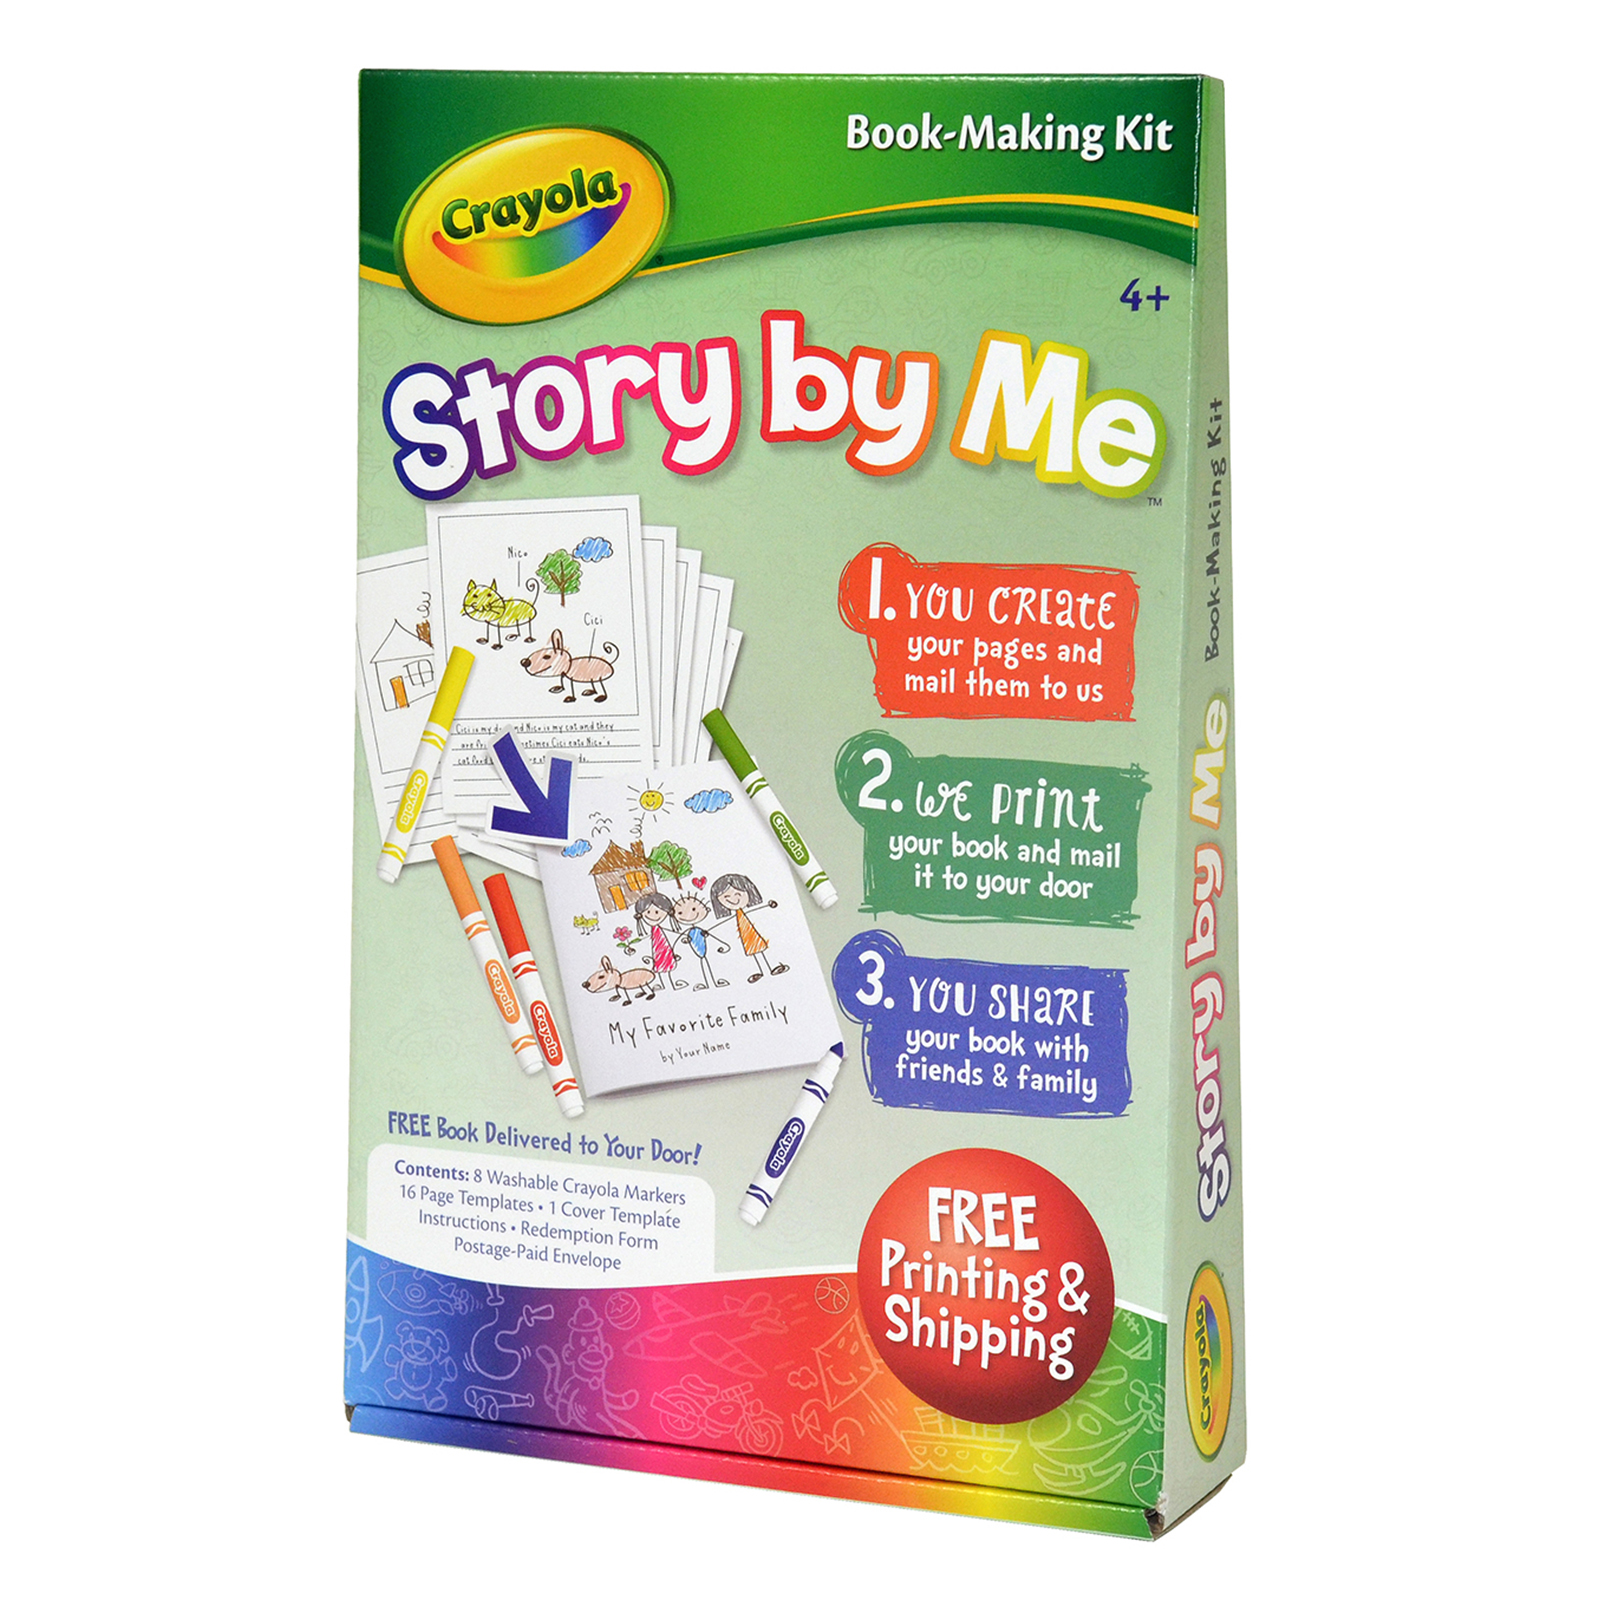 How To Make A Book Kit : Shop for the crayola story by me™ book making kit at michaels